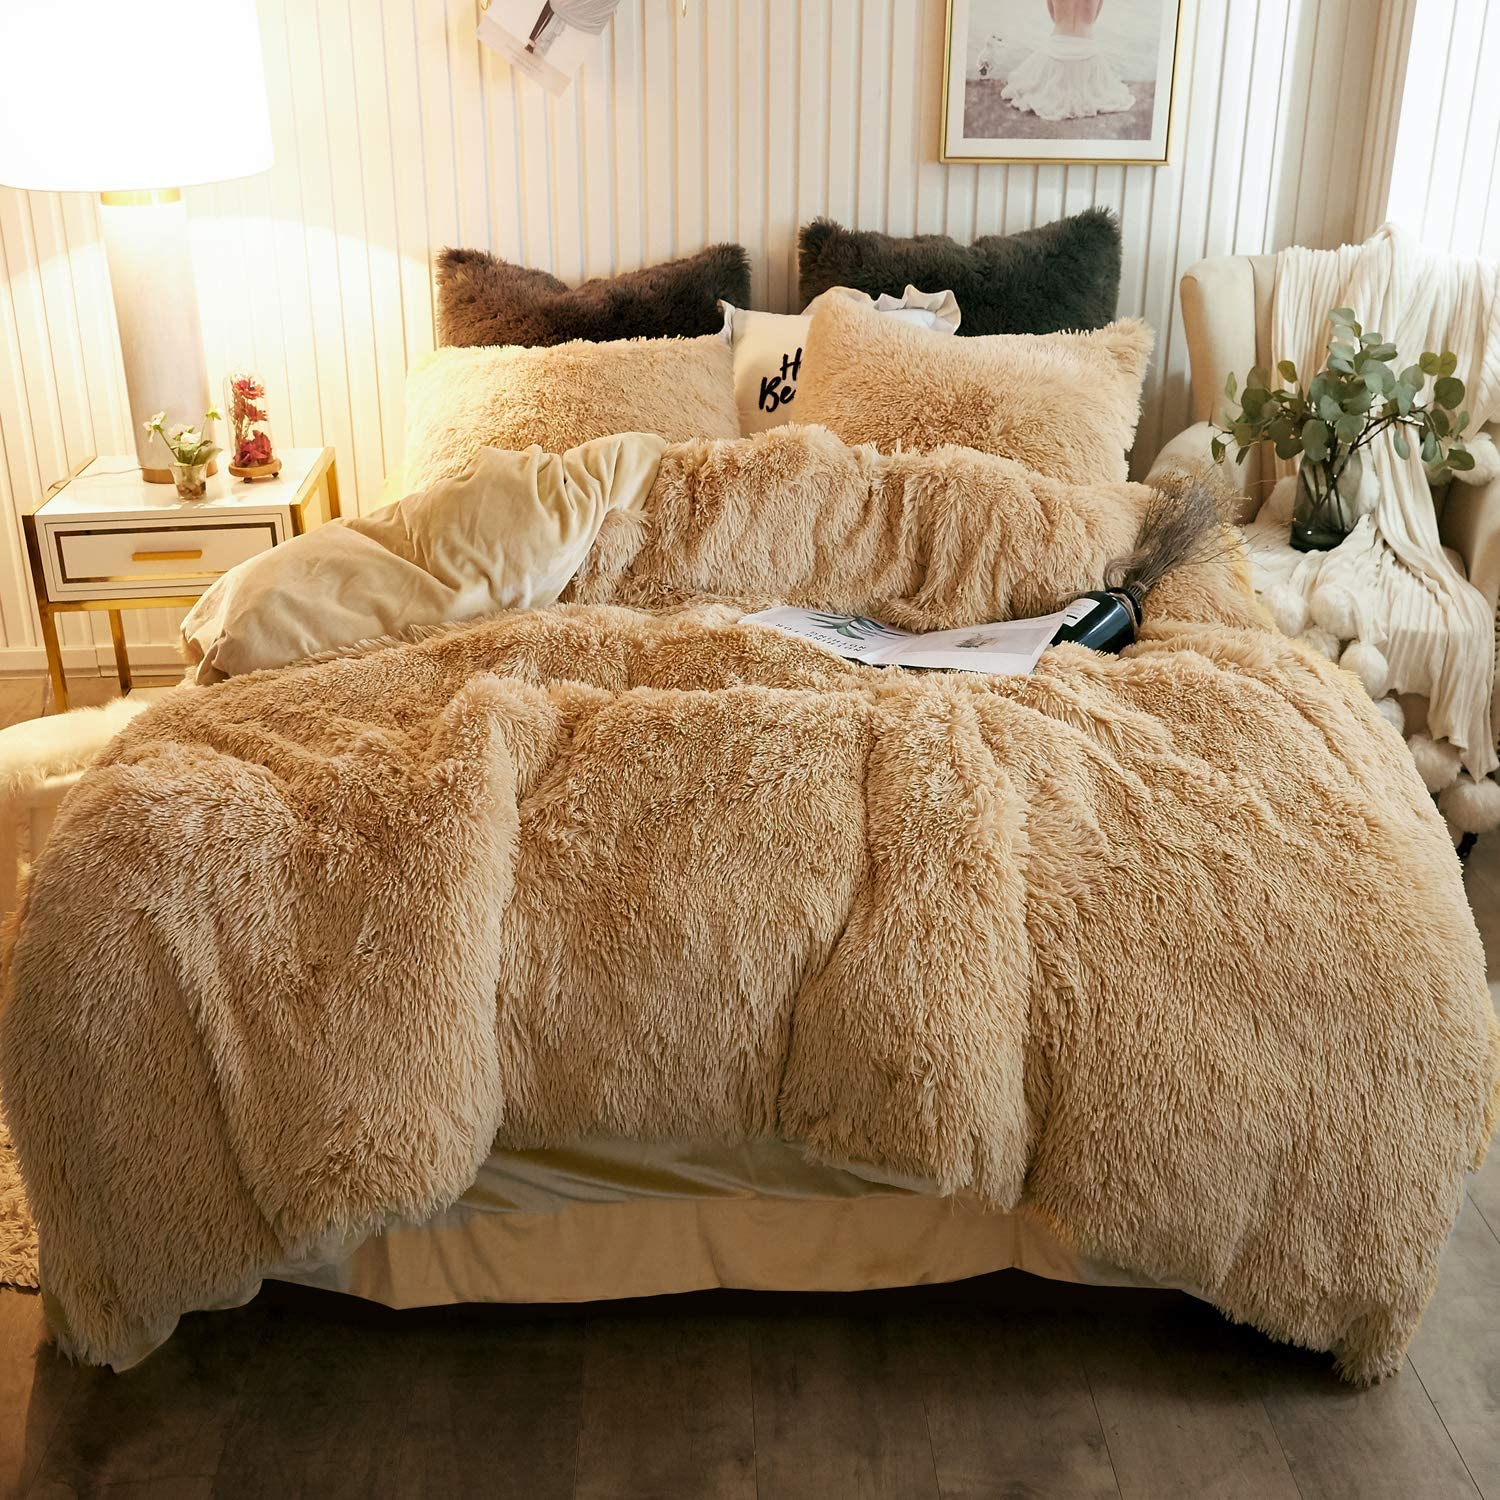 Chenfeng Plush Shaggy Duvet Cover Set Luxury Ultra Soft Crystal Velvet Bedding Sets 2 Pieces 1 Faux Fur Duvet Cover 1 Faux Fur Pillowcase Zipper Closure Twin Brown Kitchen Dining Dprd Tasikmalayakab Go Id